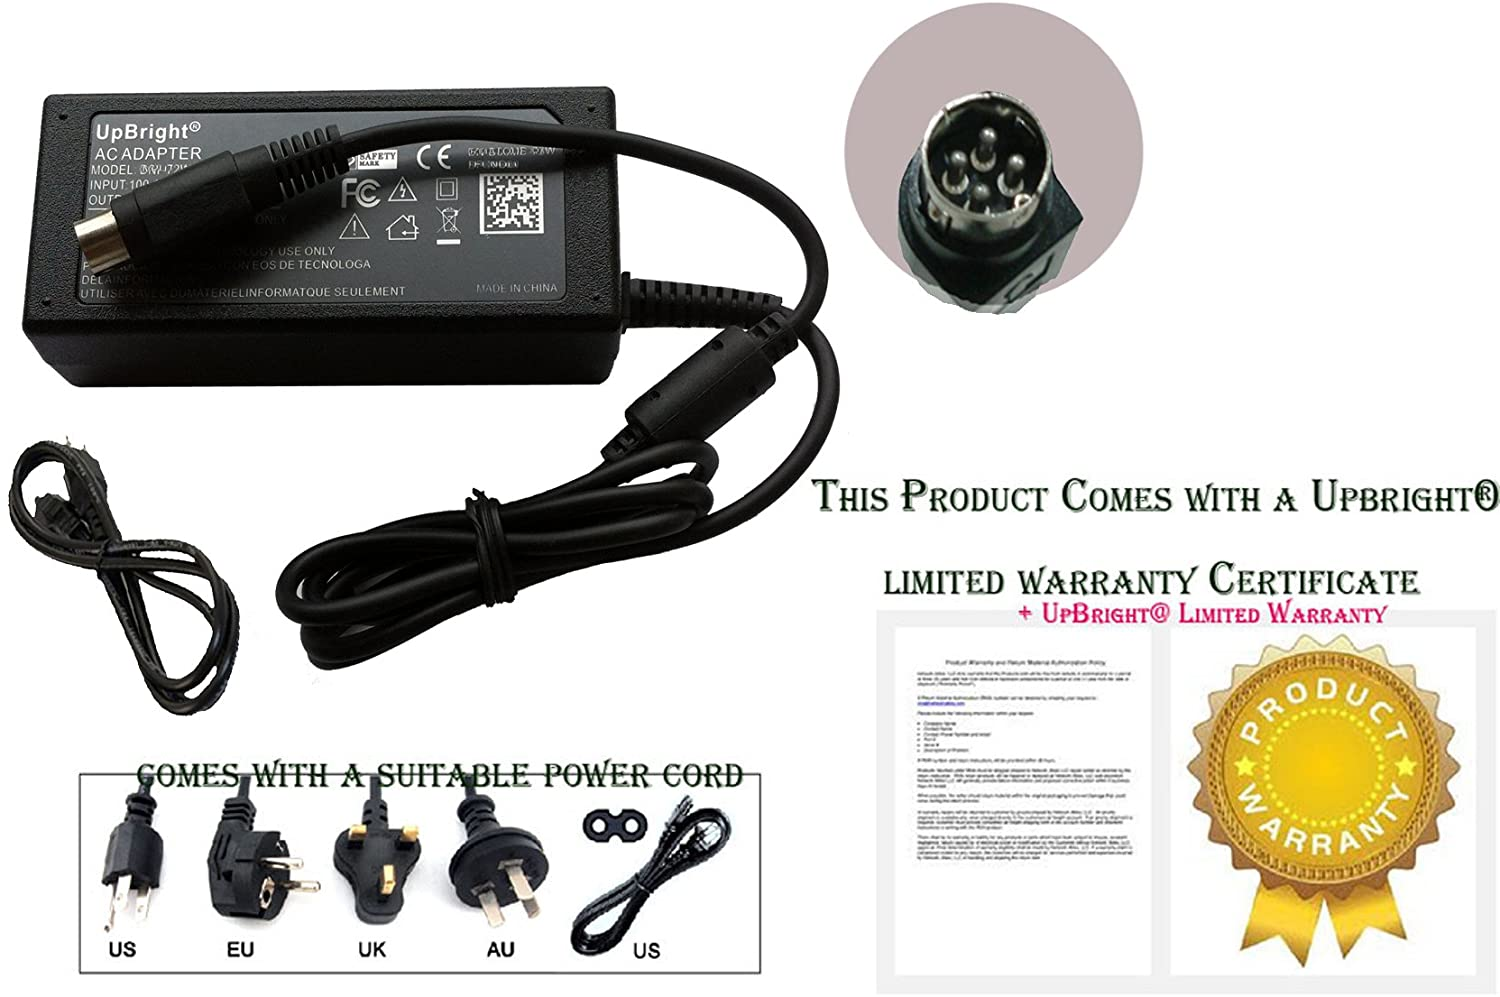 54.0V Switching Power Supply Cord Charger PSU UpBright New Global 4-Pin DIN AC//DC Adapter Replacement for FSP Group INC FSP090-DMBC1 FSP090DMBC1 P//N Model No. 9NA0903503 9NA0903501 48-54V 48V